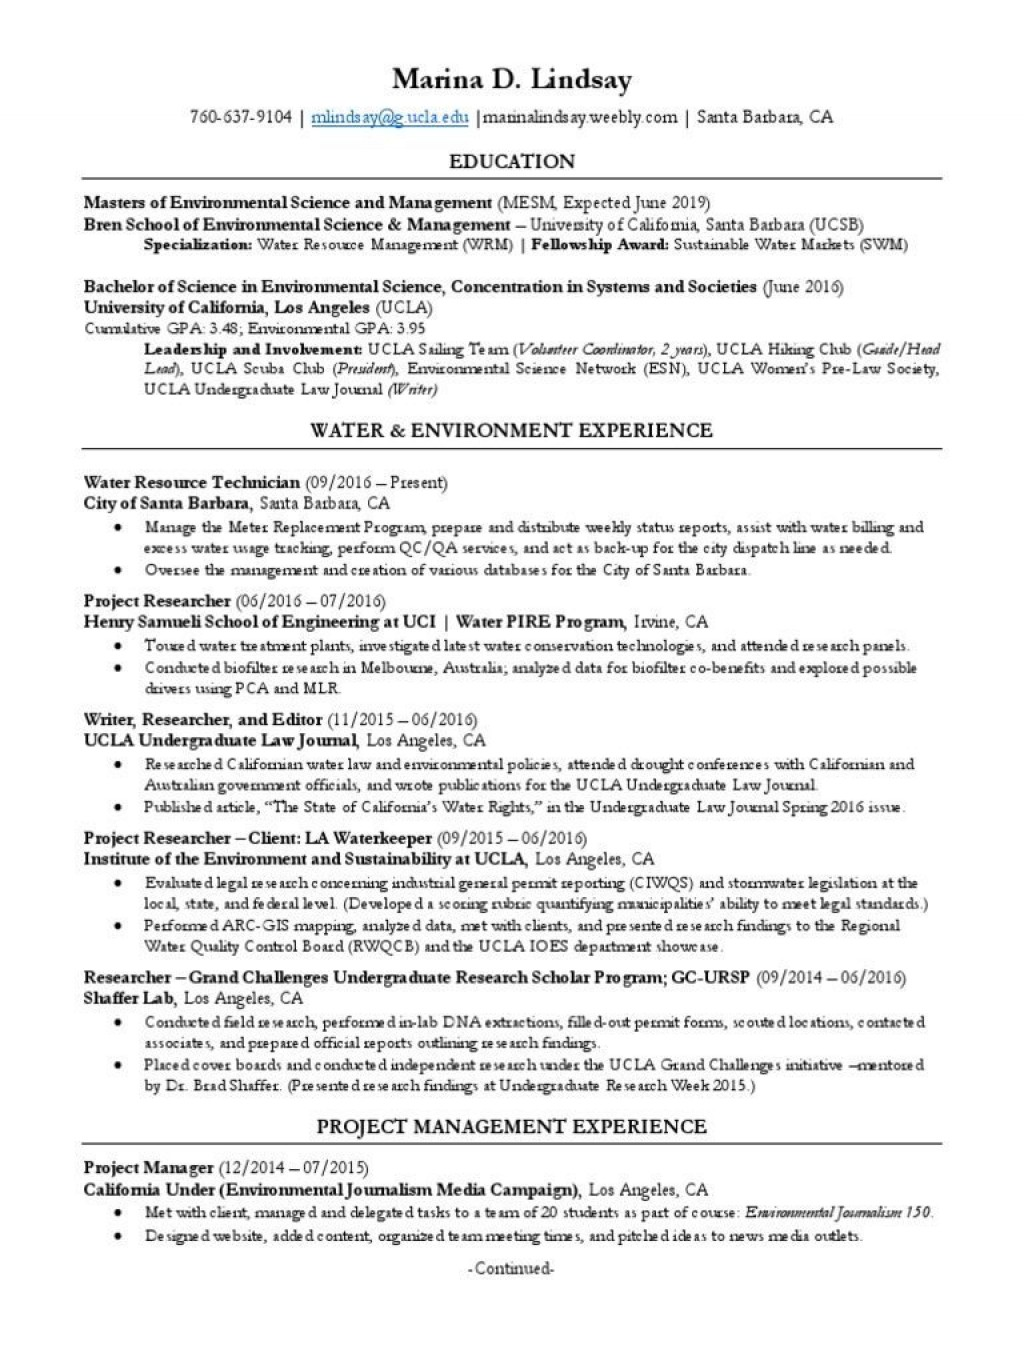 004 Picture Gallery For Website Apply Texas Topic Essays 768x1024resize7682c1024 Frightening C Essay Examples Large